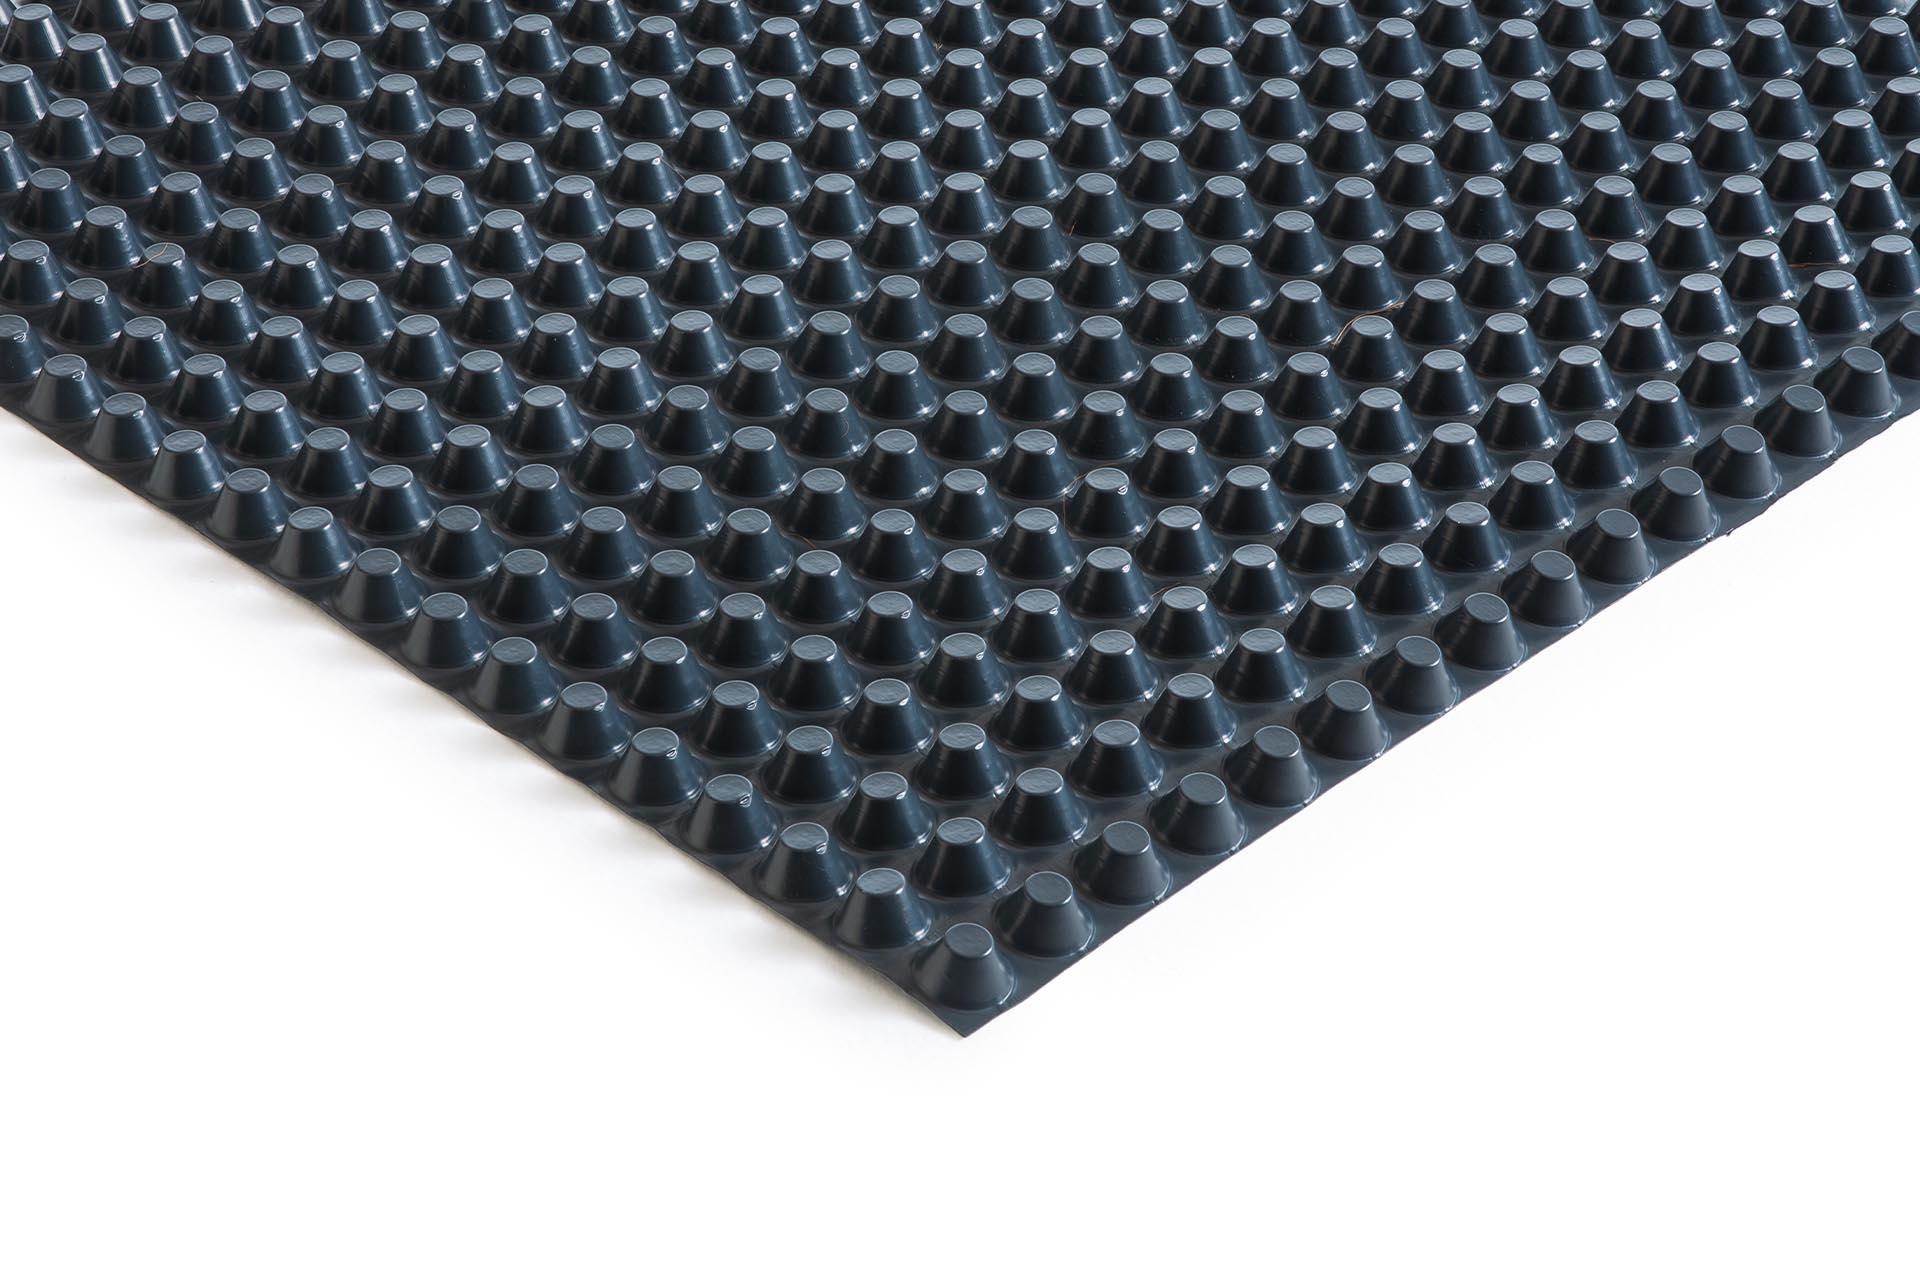 HDPE studded membrane, 20 mm thick with fire retardant additives